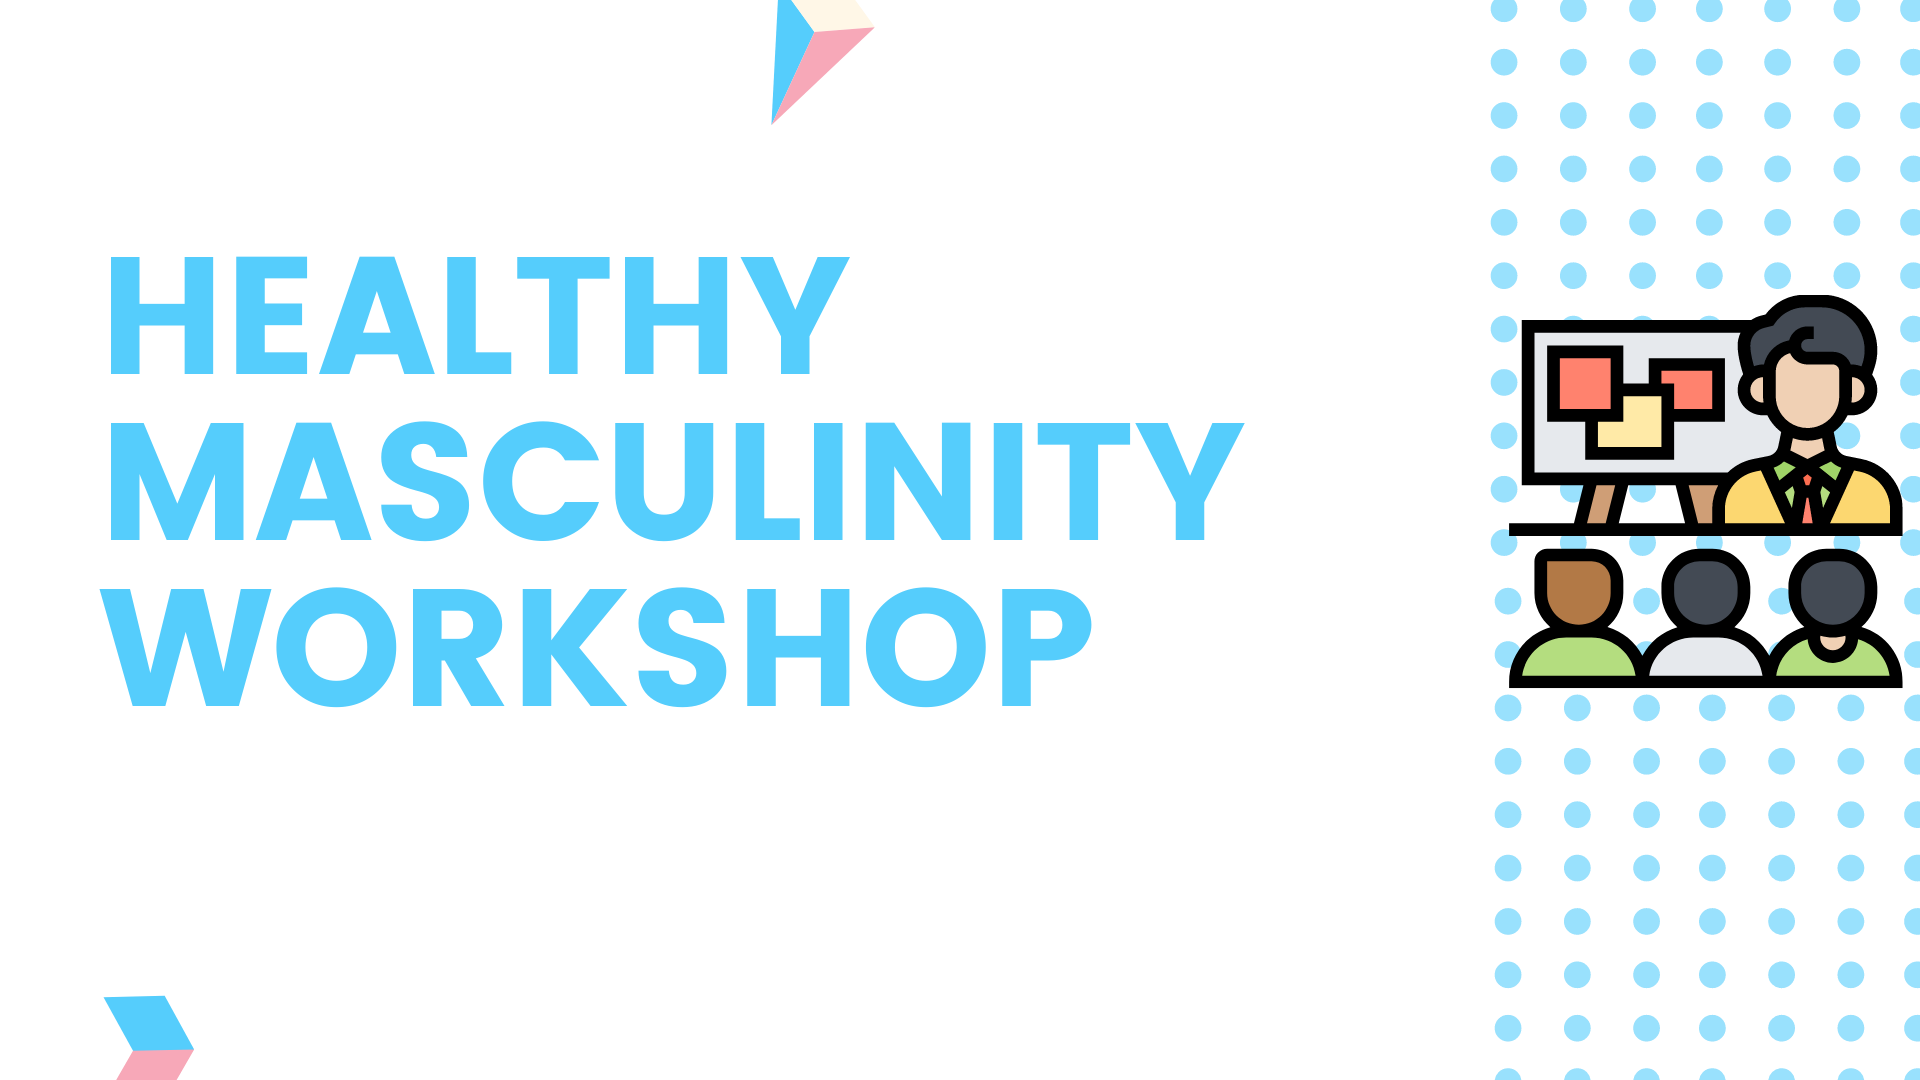 The Healthy Masculinity Workshop featuring an icon of 3 people watching another person present information on a board